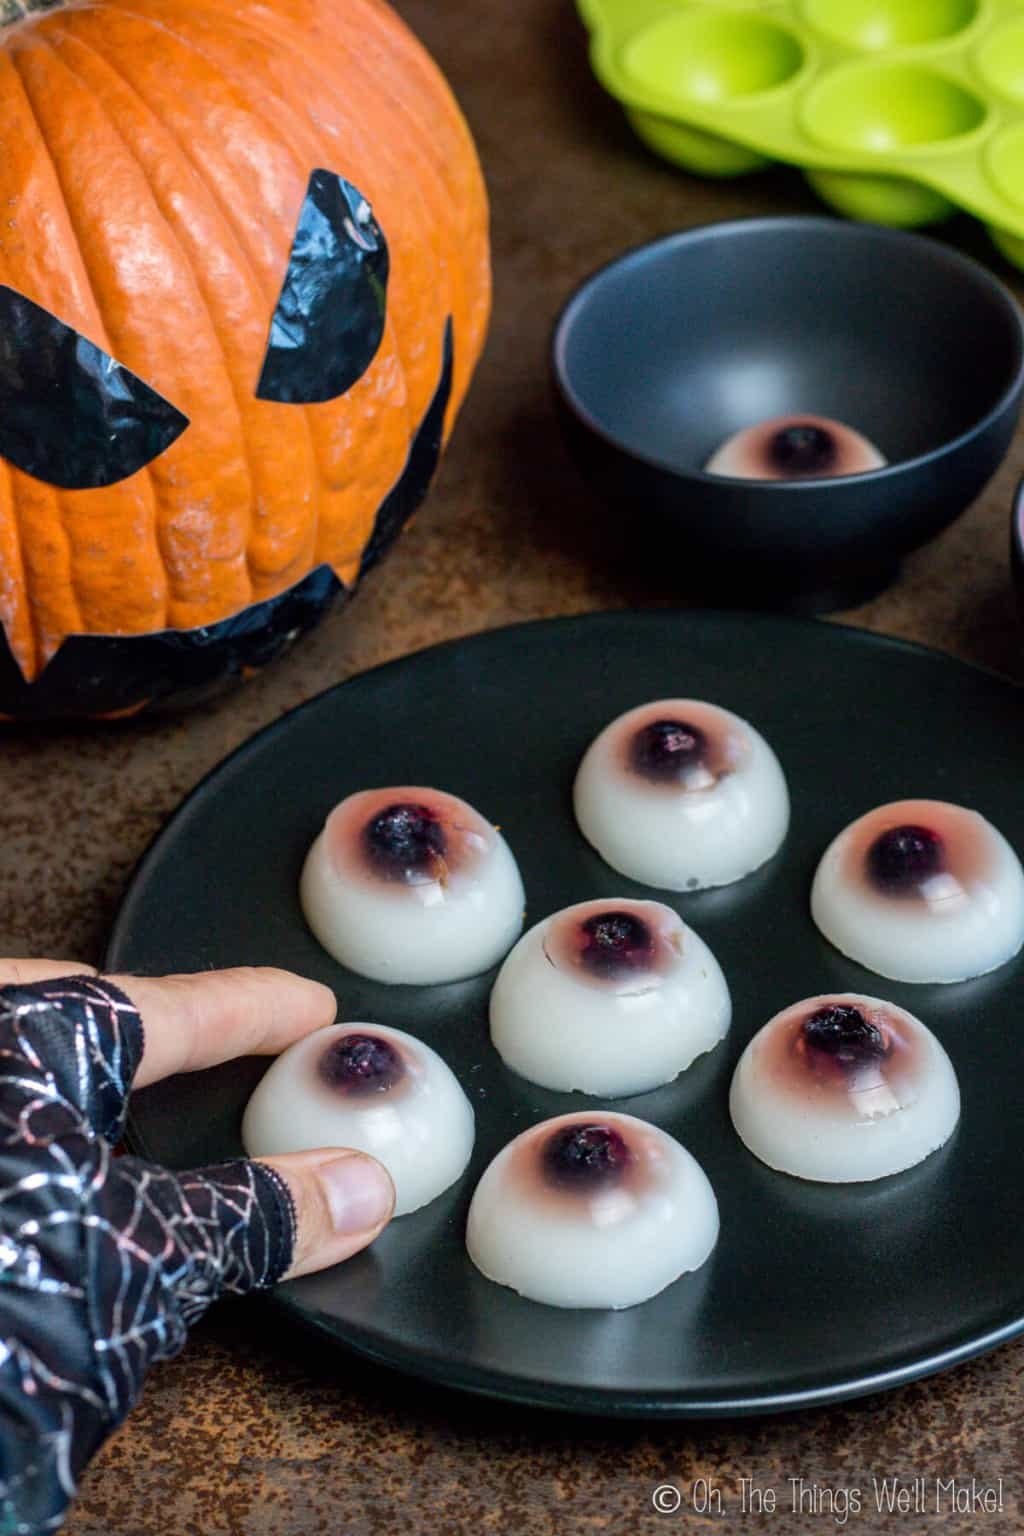 A hand about to pick up a homemade gummy eyeball off a plate full of them.